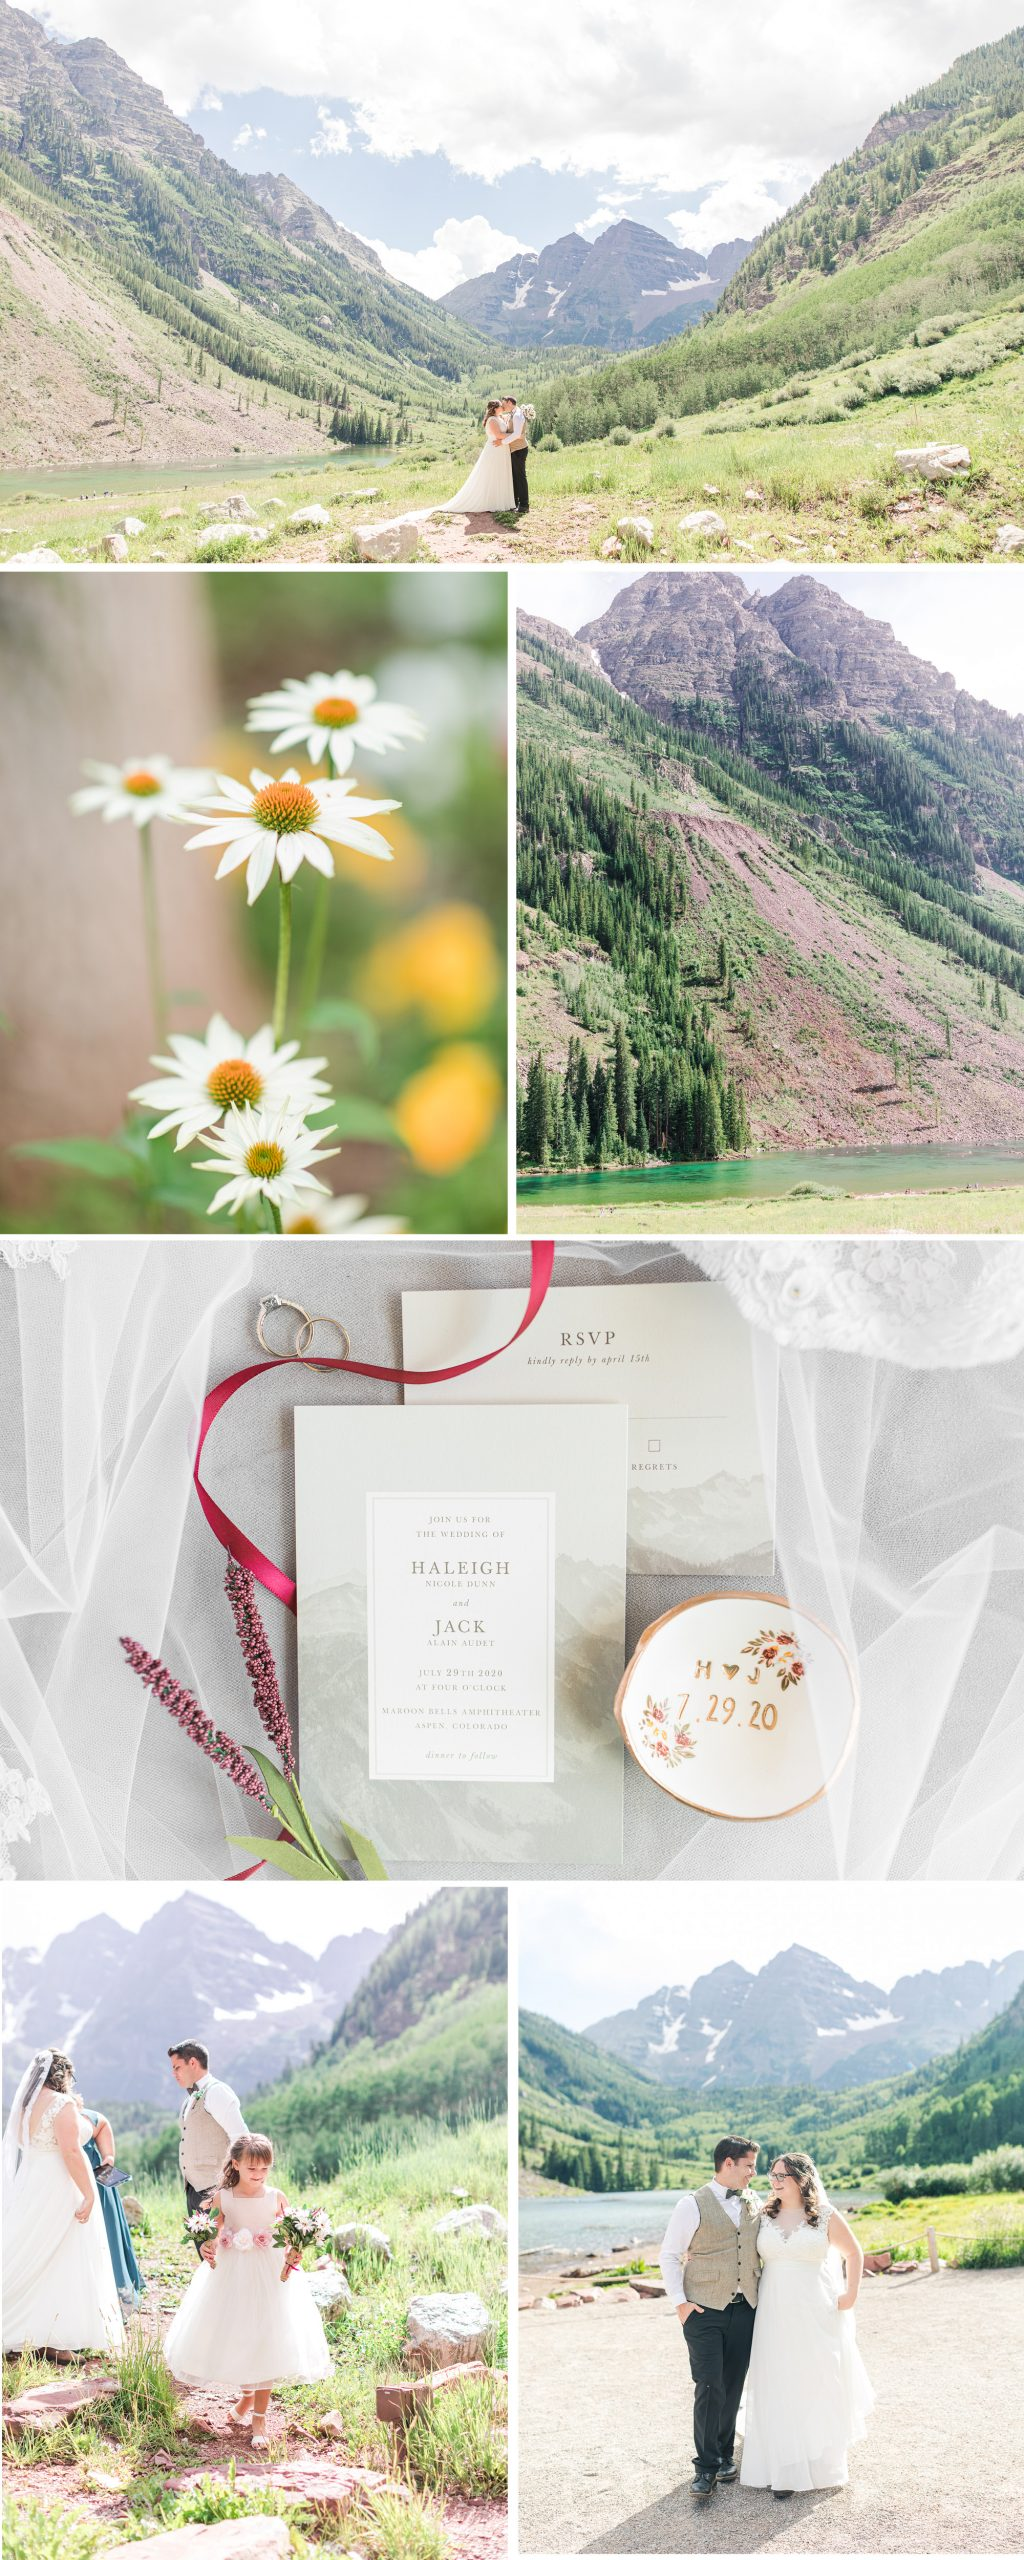 A Romantic, Intimate, Maroon Bells Destination Wedding in Aspen, Colorado by Katelyn James Photography